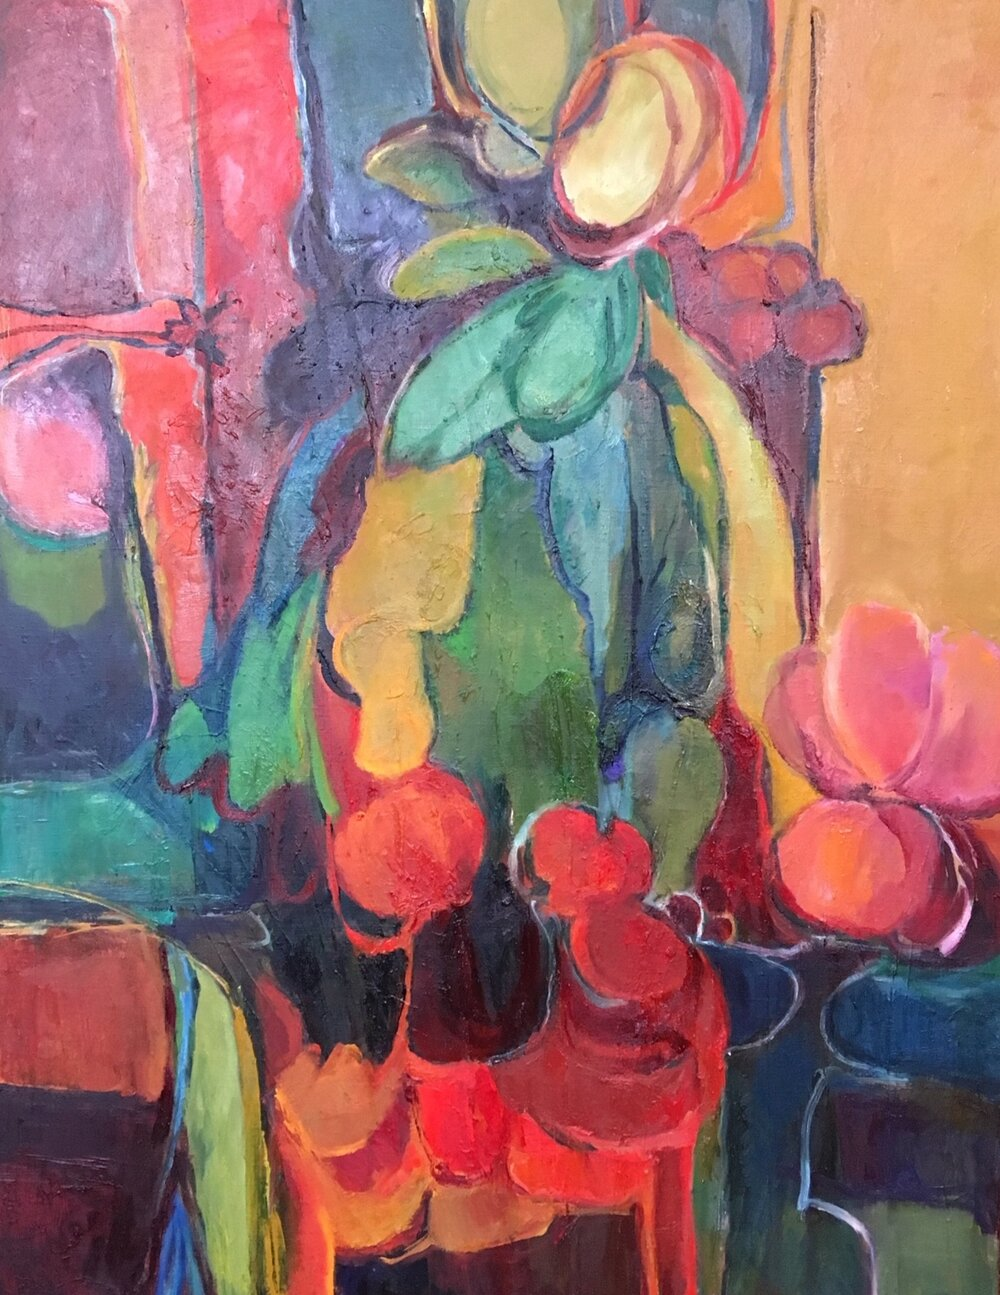 Flower Vendor, 34 x 26 inches